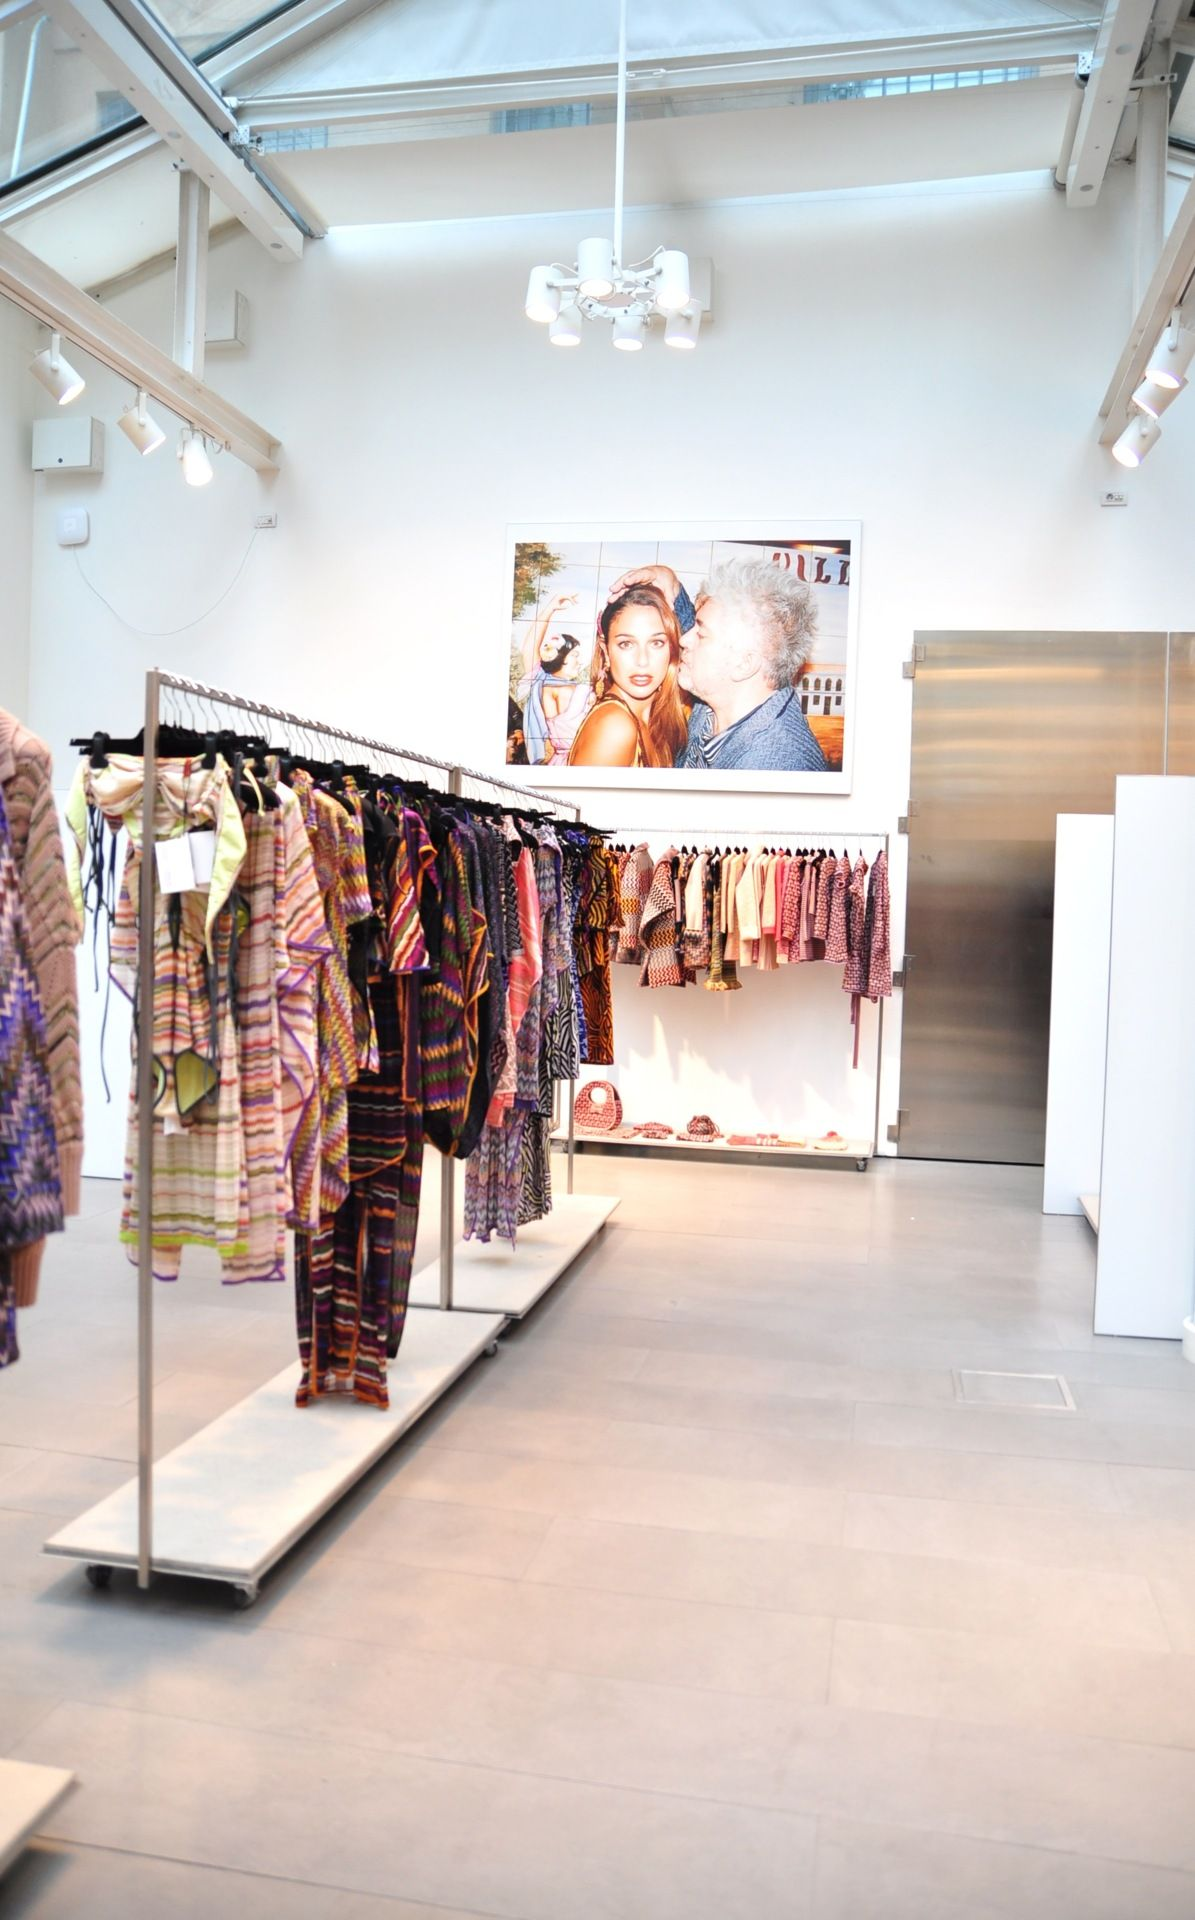 2019 year style- Opens missoni stand alone store in uk